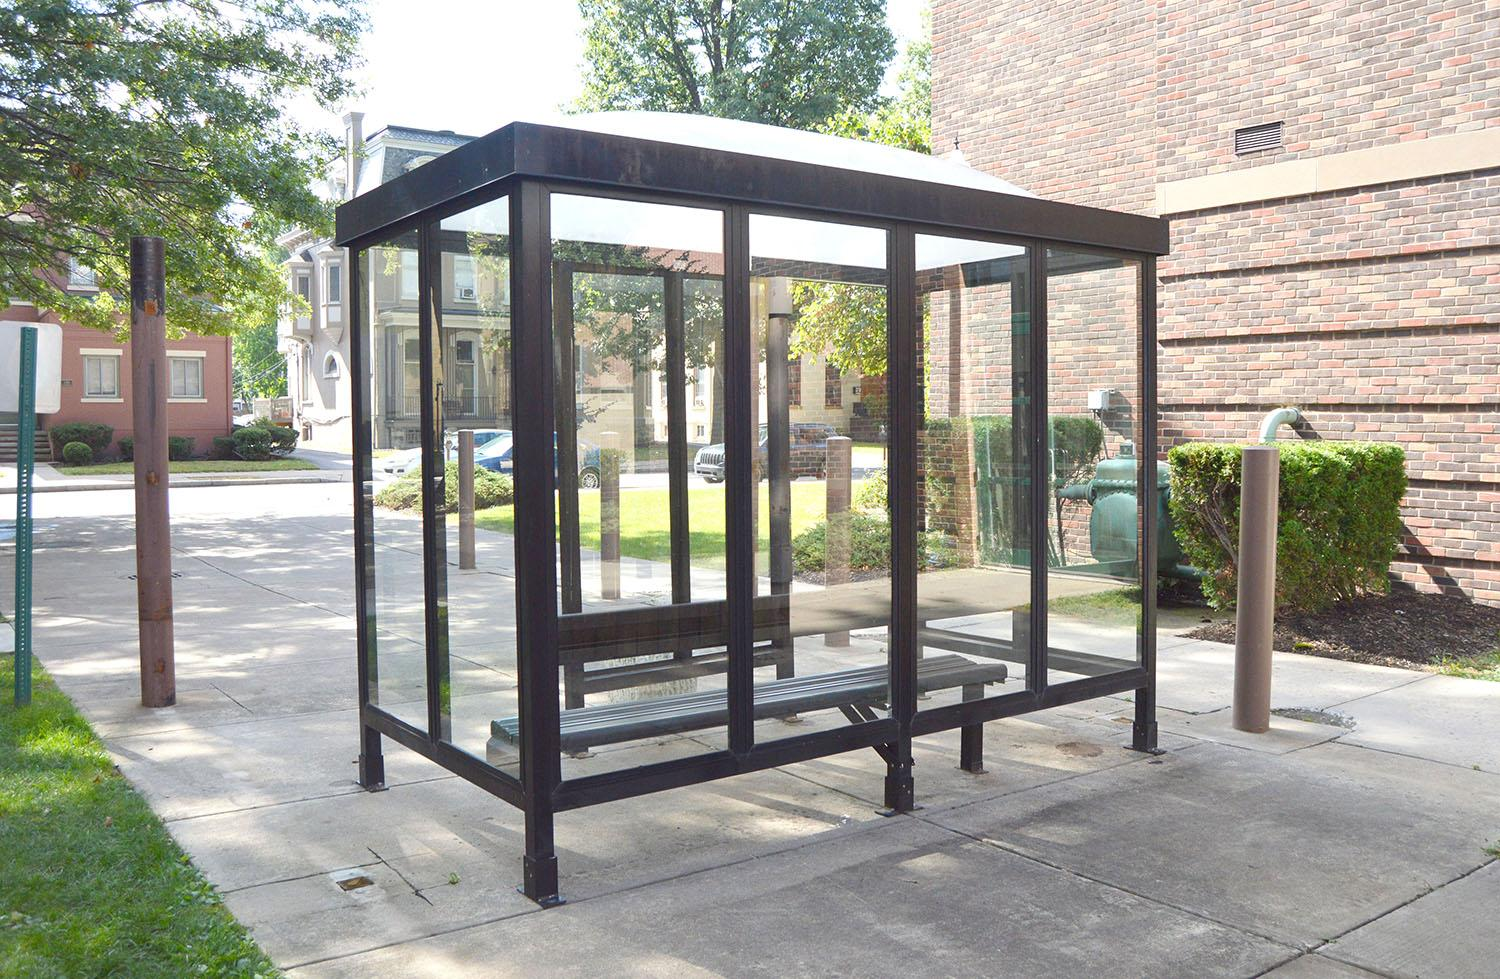 Wilkes' new community enforced smoking policy prohibits smoking within 20 feet of any university building, window or ventilating system. This policy is intended to promote a healthy living environment for students and faculty by eliminating all secondhand smoke that could be inhaled at the entraces of buildings.  The university recently installed a smoking hut, located between Sturdevant Hall and Breiseth Hall,  which provides shelter for smokers during inclement weather with inclosed seating.